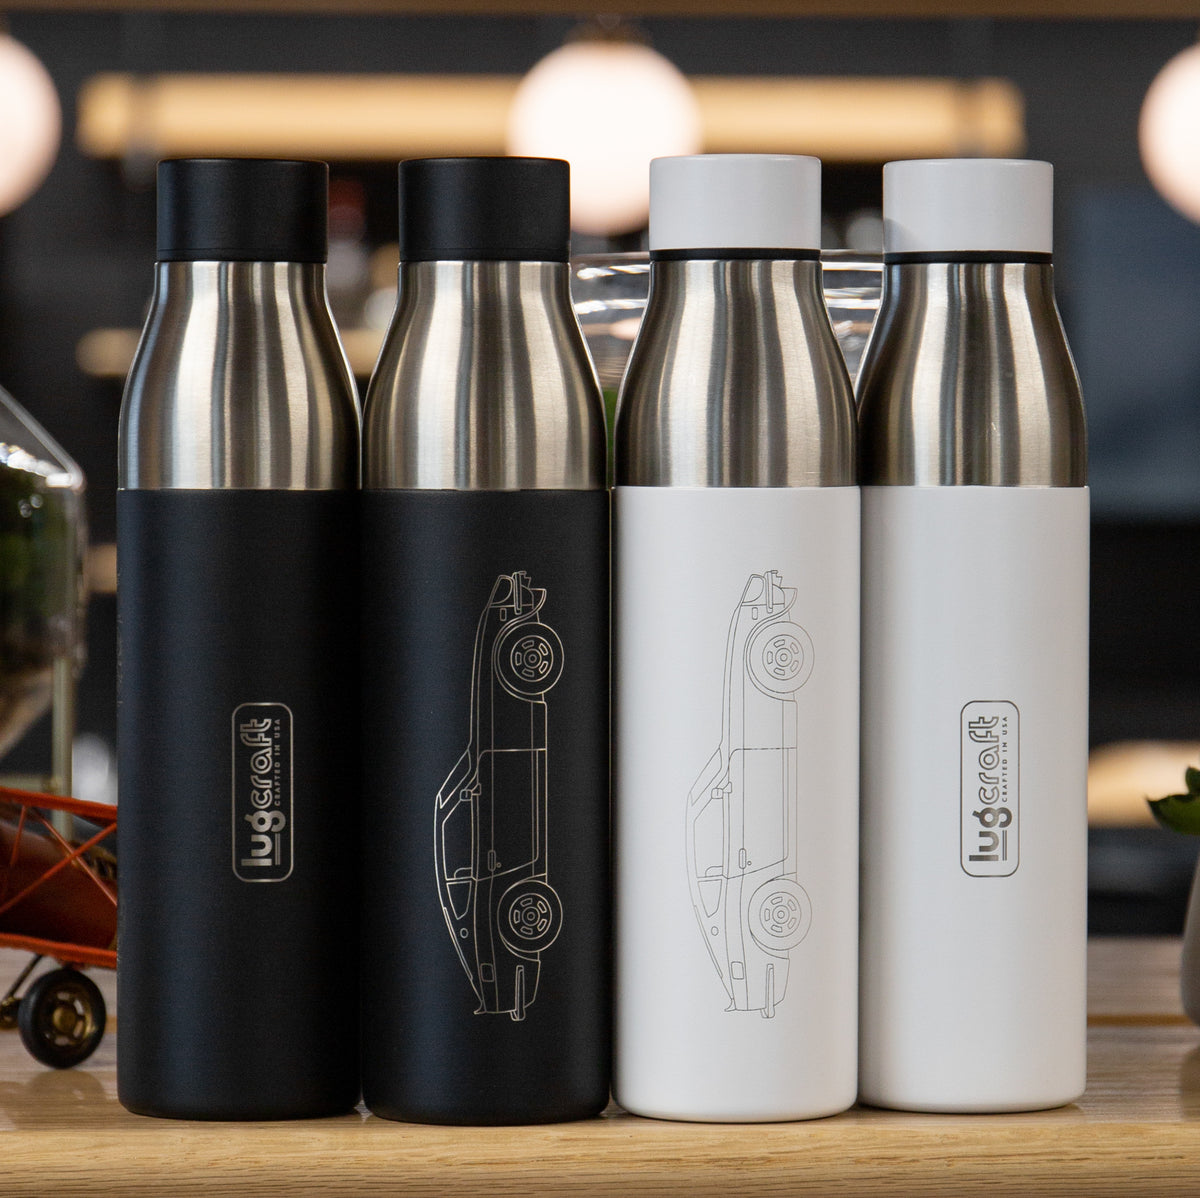 Datsun 240z Side Profile Insulated Stainless Steel Water Bottle - 21 oz